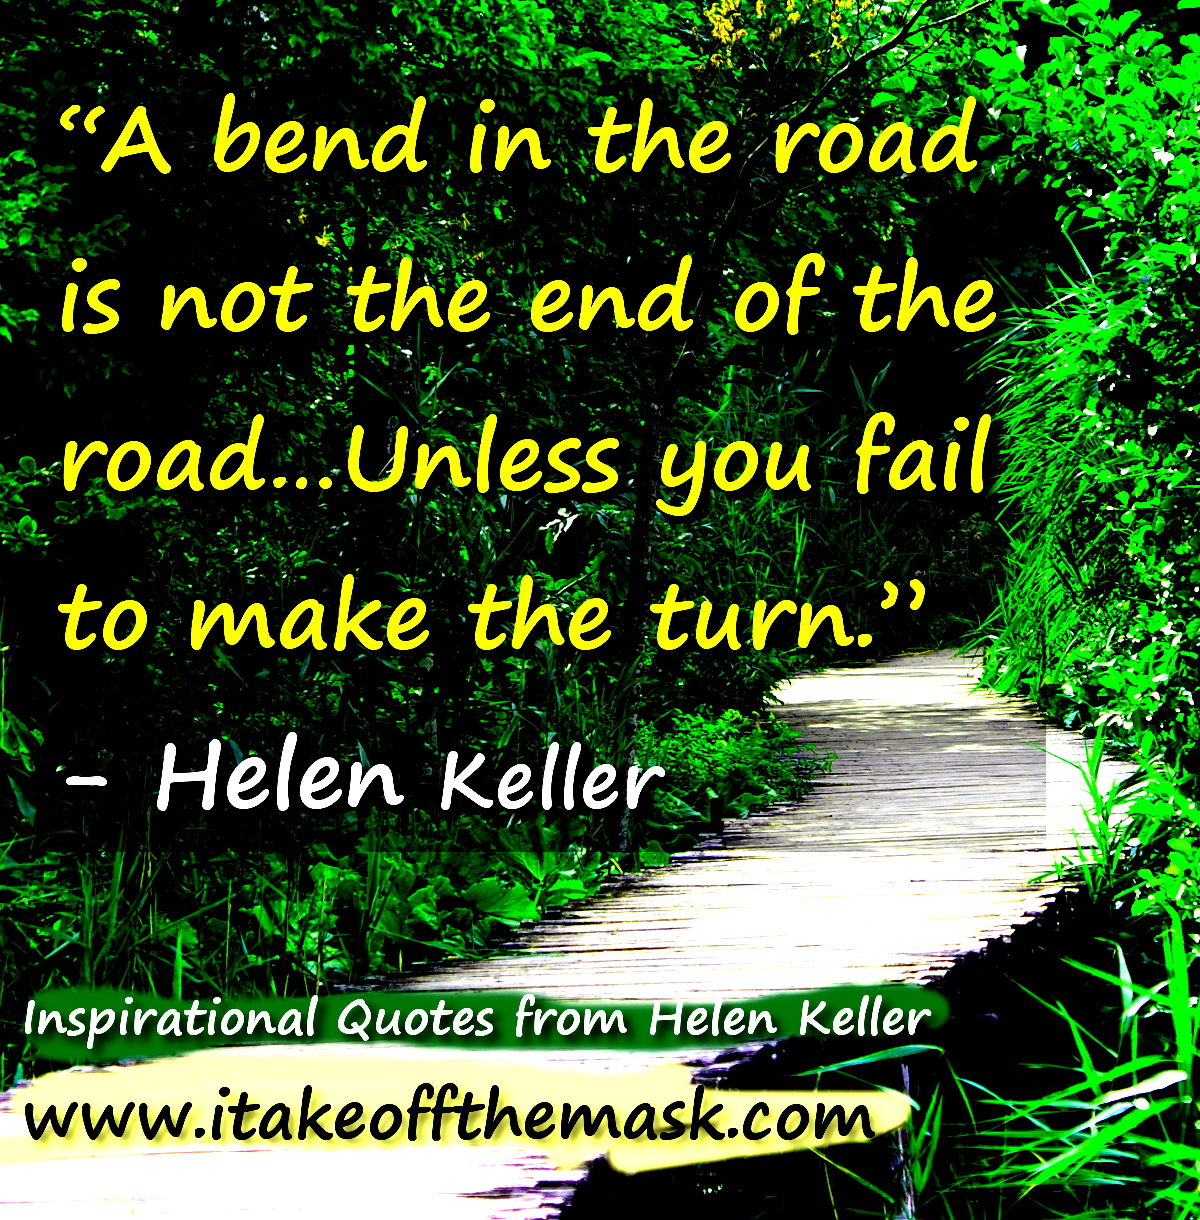 Inspirational quotes from helen keller best life quotes poems bendinroad2 altavistaventures